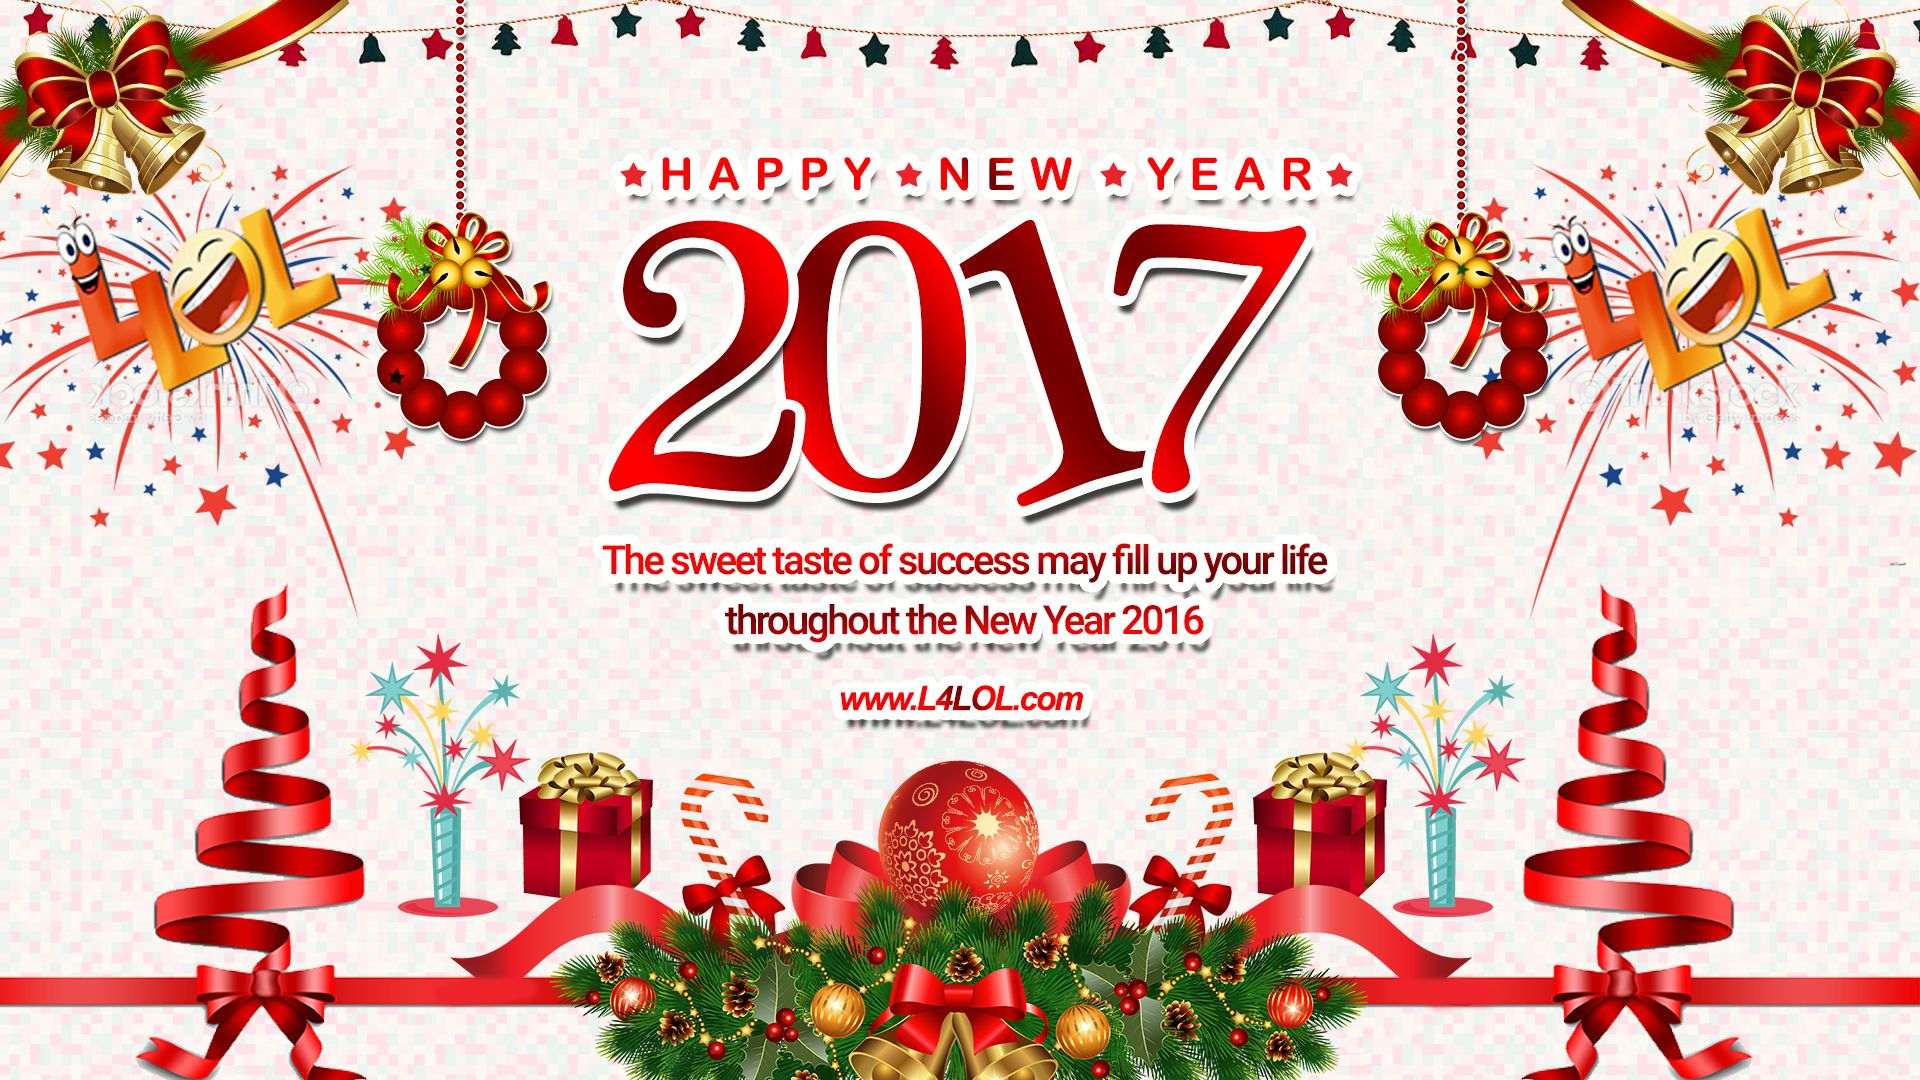 Wallpaper download new 2017 - Happy New Year 2017 Gif Images And Share Download Free Http Www